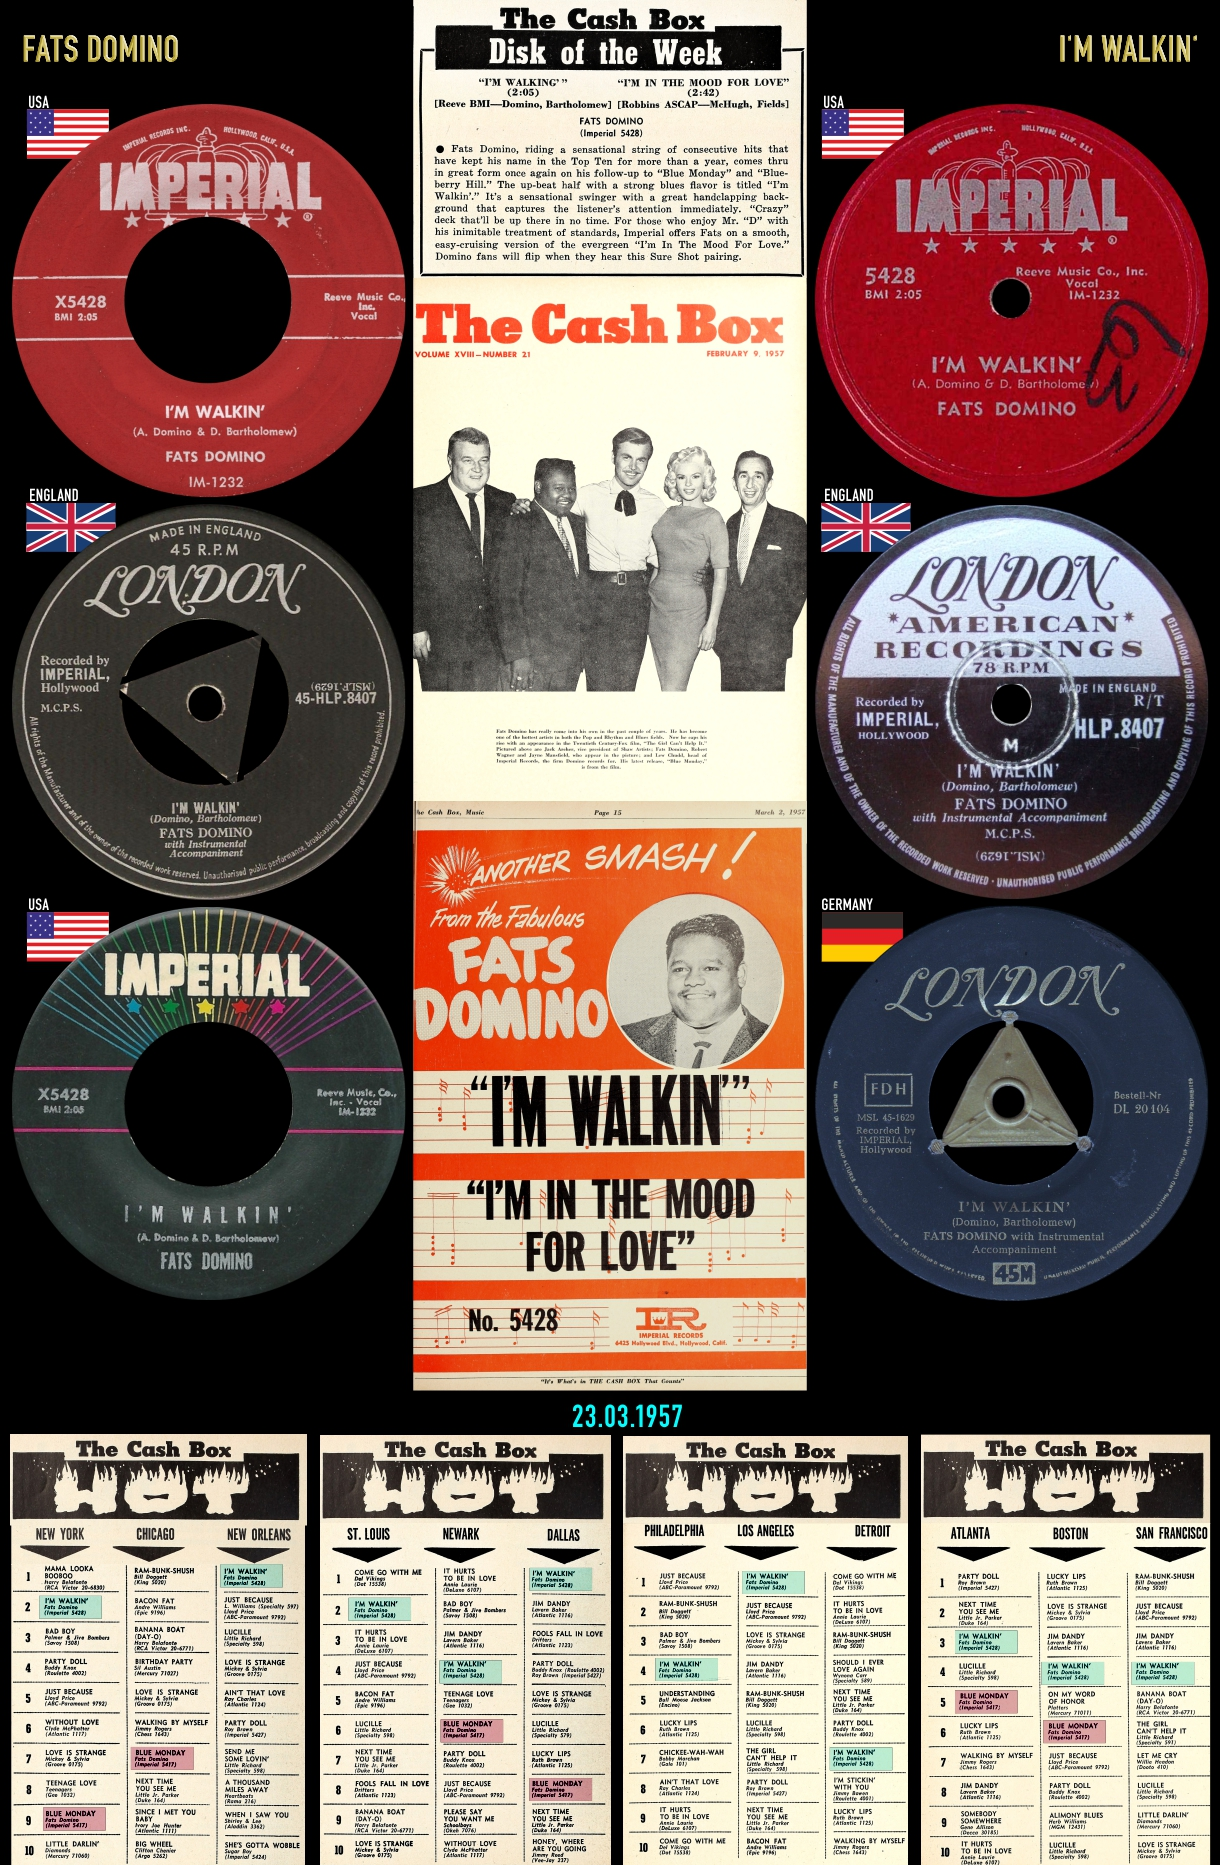 570309_Fats Domino_I'm Walkin'